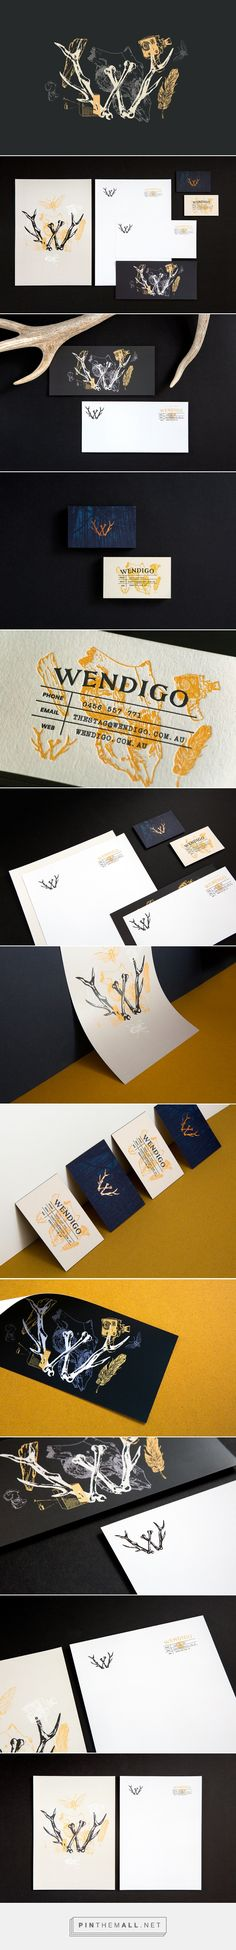 Wendigo on Behance | Fivestar Branding – Design and Branding Agency & Inspiration Gallery